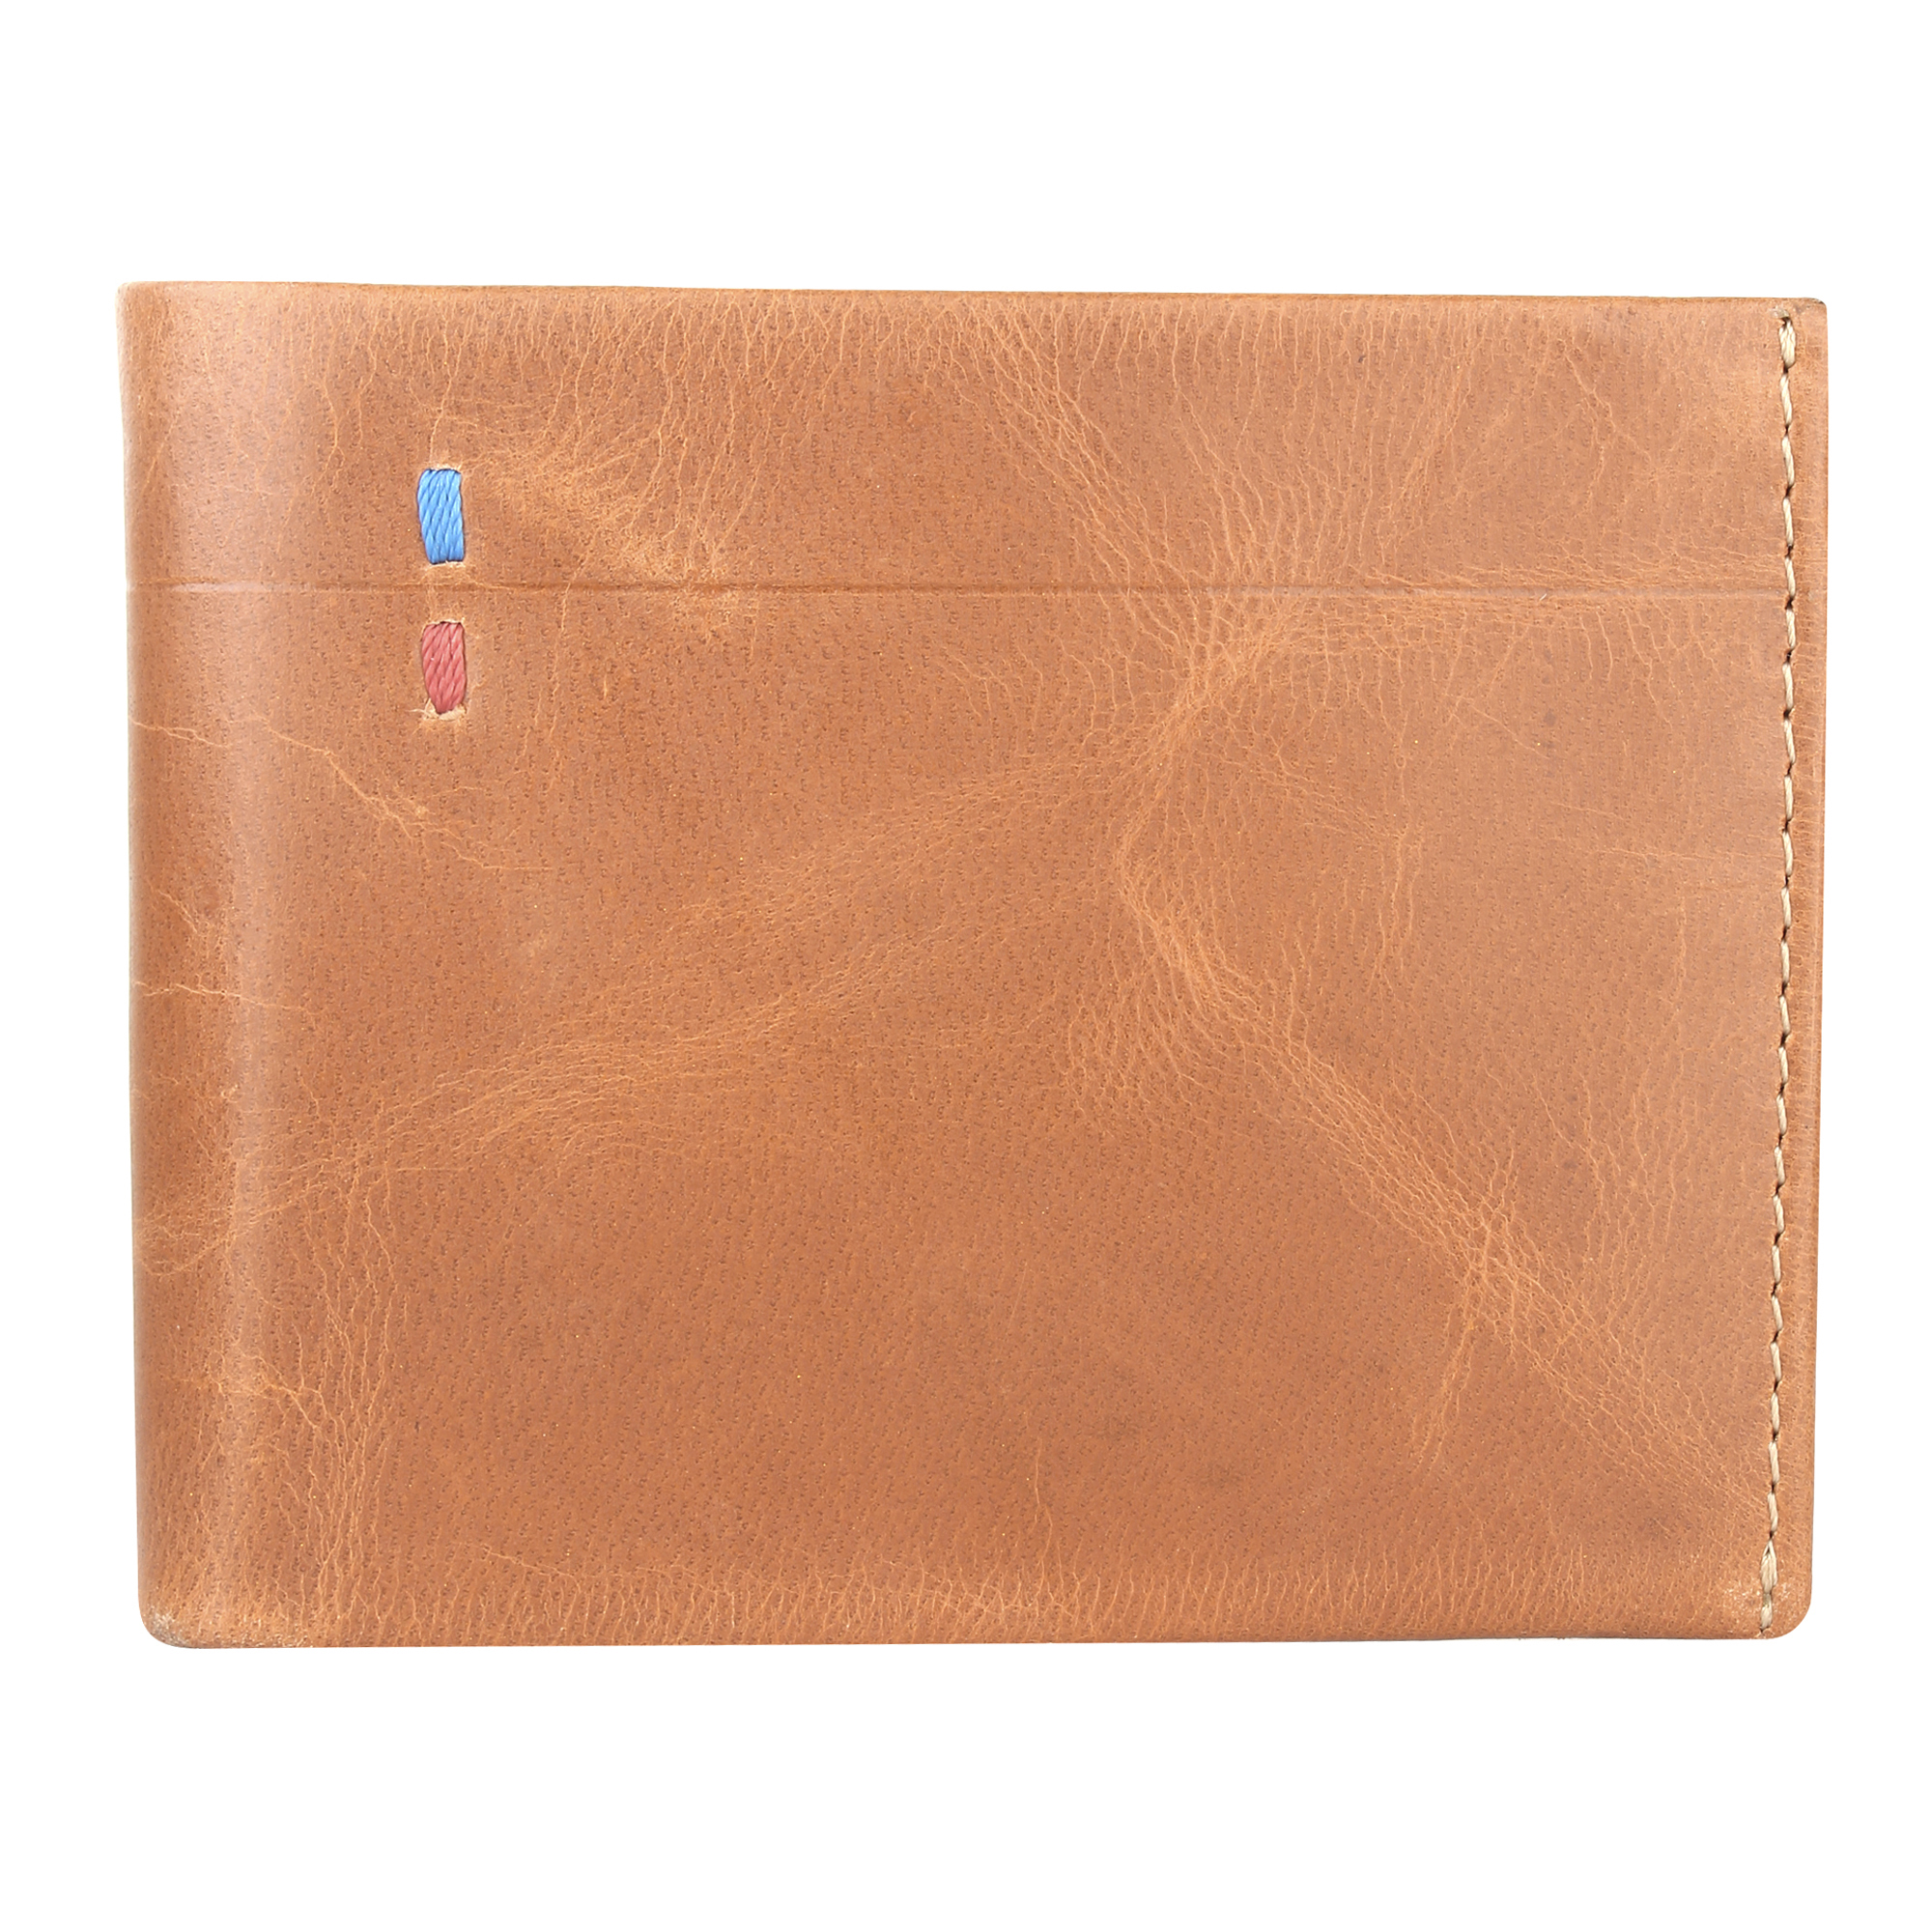 Leather Wallets Manufacturers in Idaho, Leather Wallets Suppliers in Idaho, Leather Wallets Wholesalers in Idaho, Leather Wallets Traders in Idaho